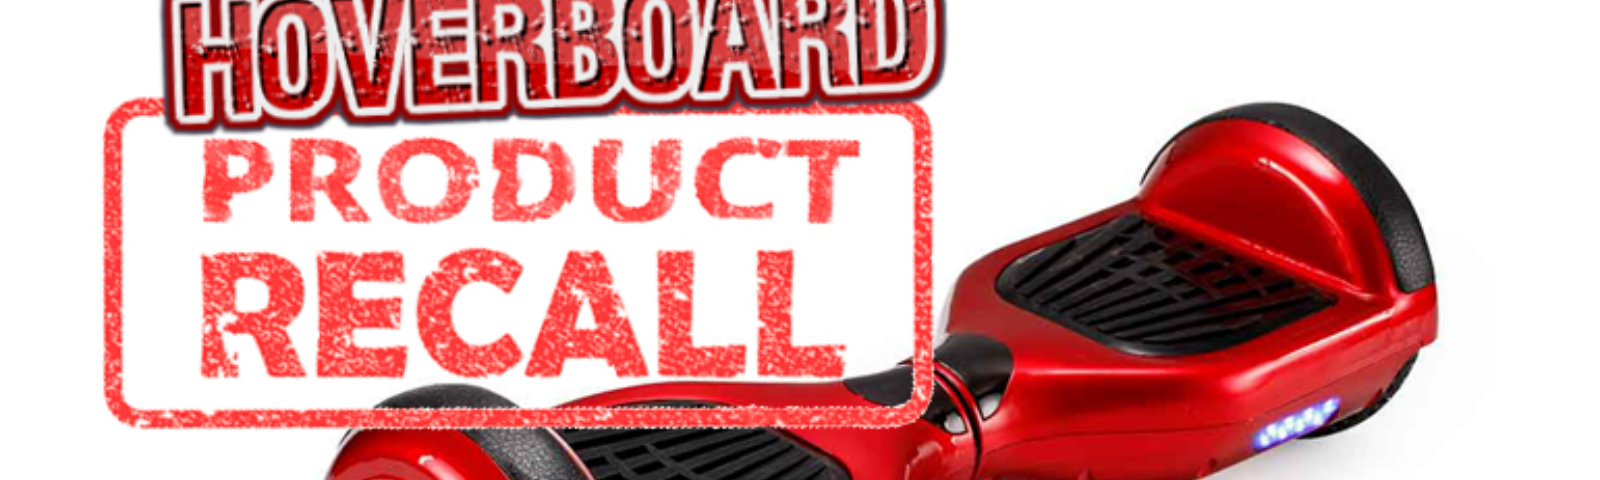 Unsafe Hoverboard scooters recalled